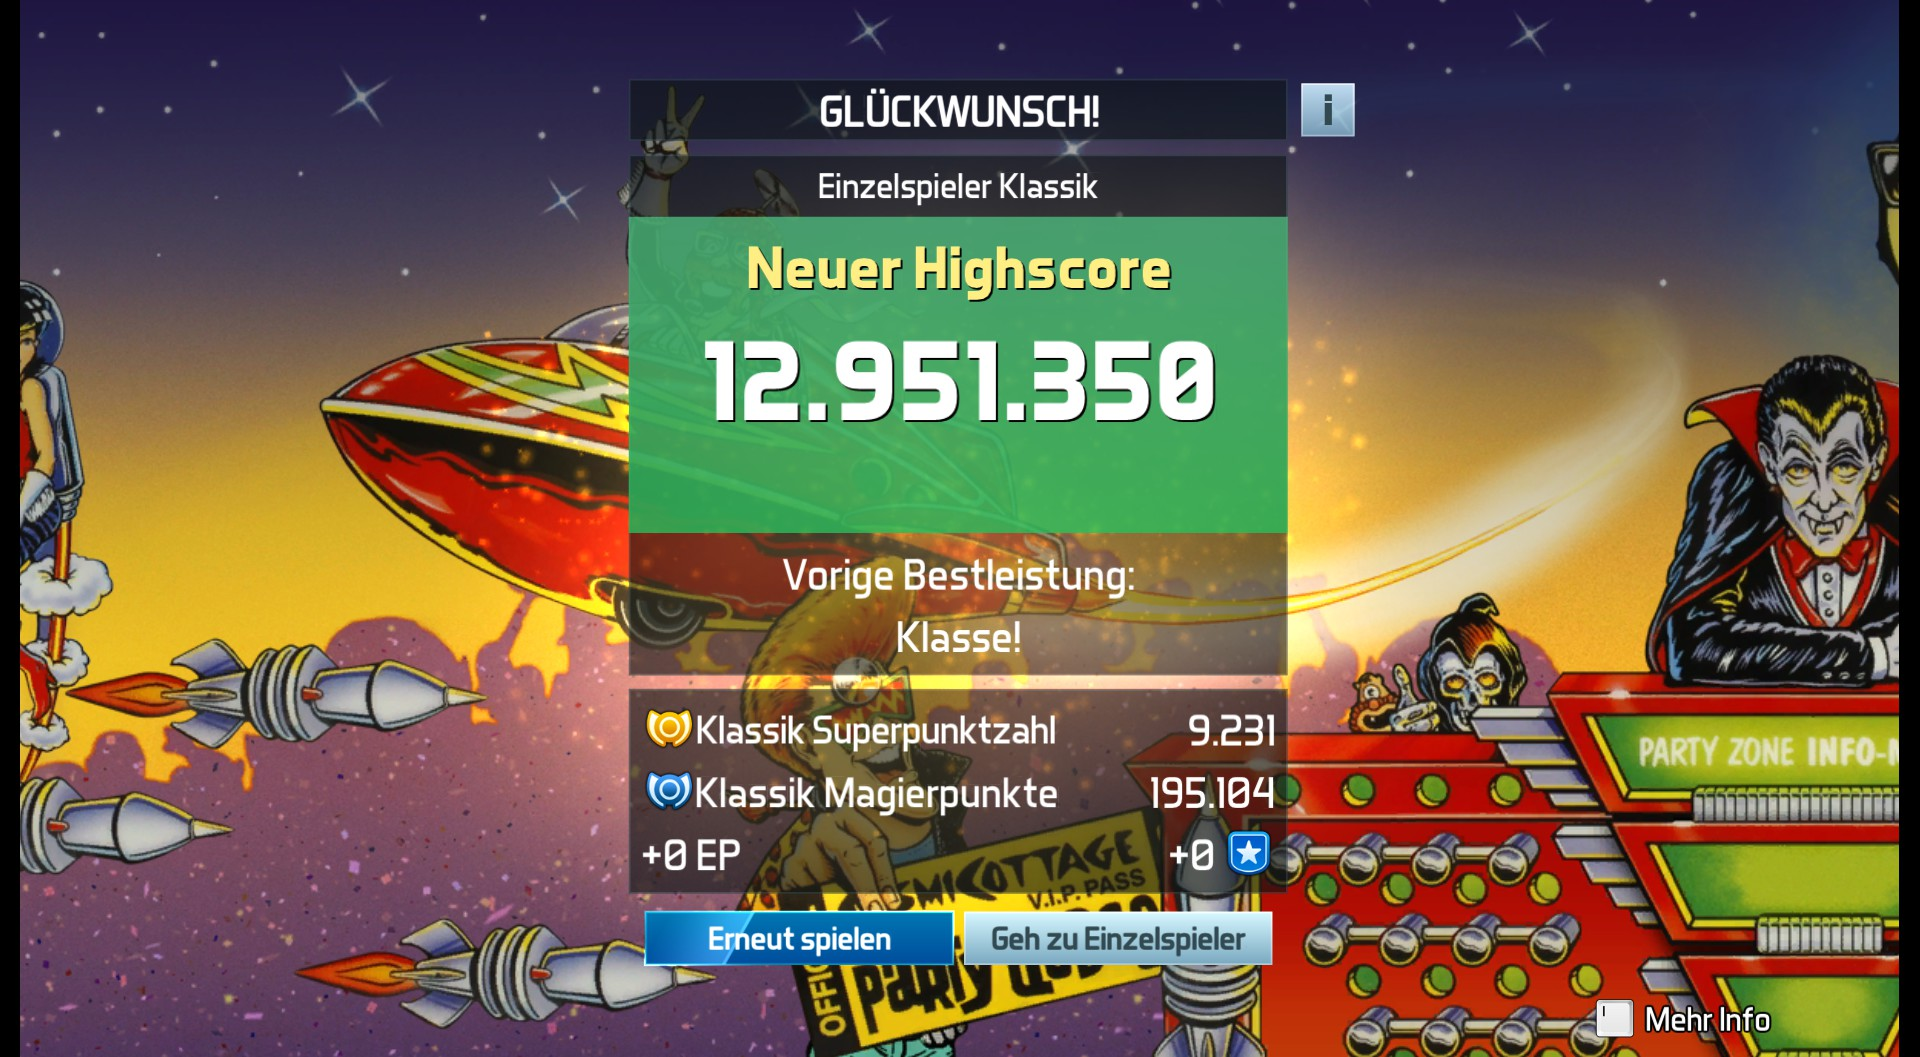 CAC1QU3: Pinball FX3: The Party Zone [Tournament] (PC) 12,951,350 points on 2019-04-25 18:11:38